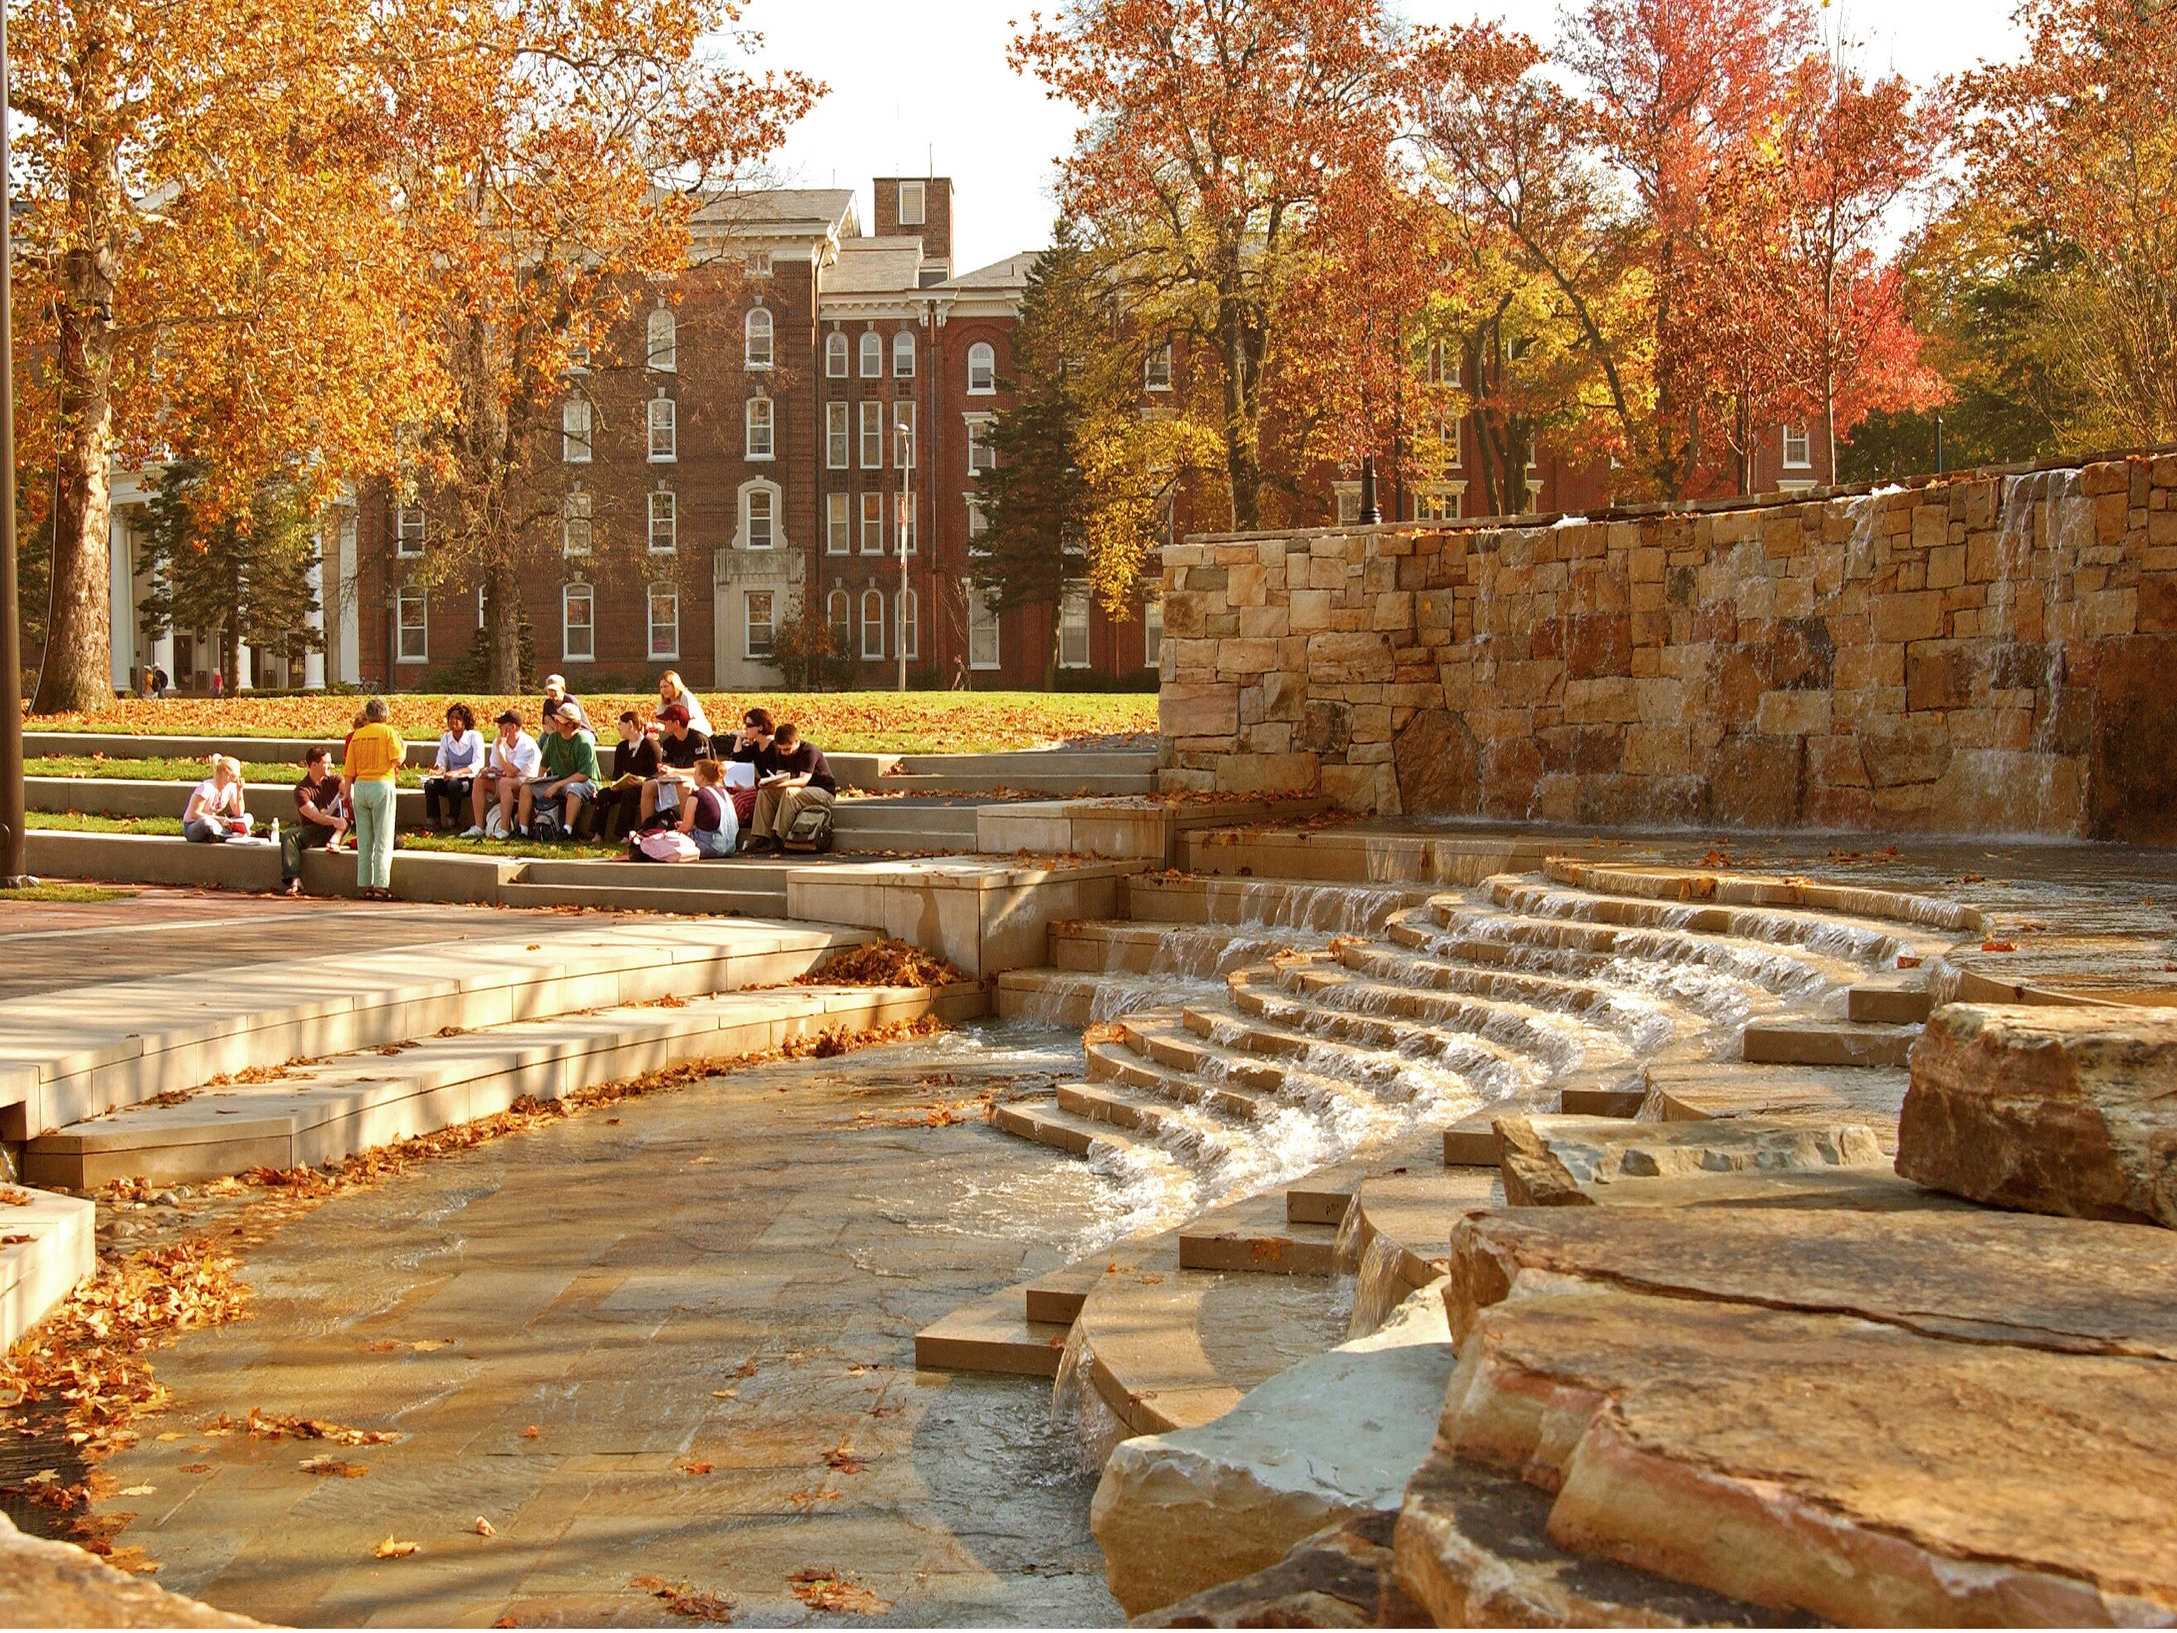 KUTZTOWN UNIVERSITY ALUMNI PLAZA